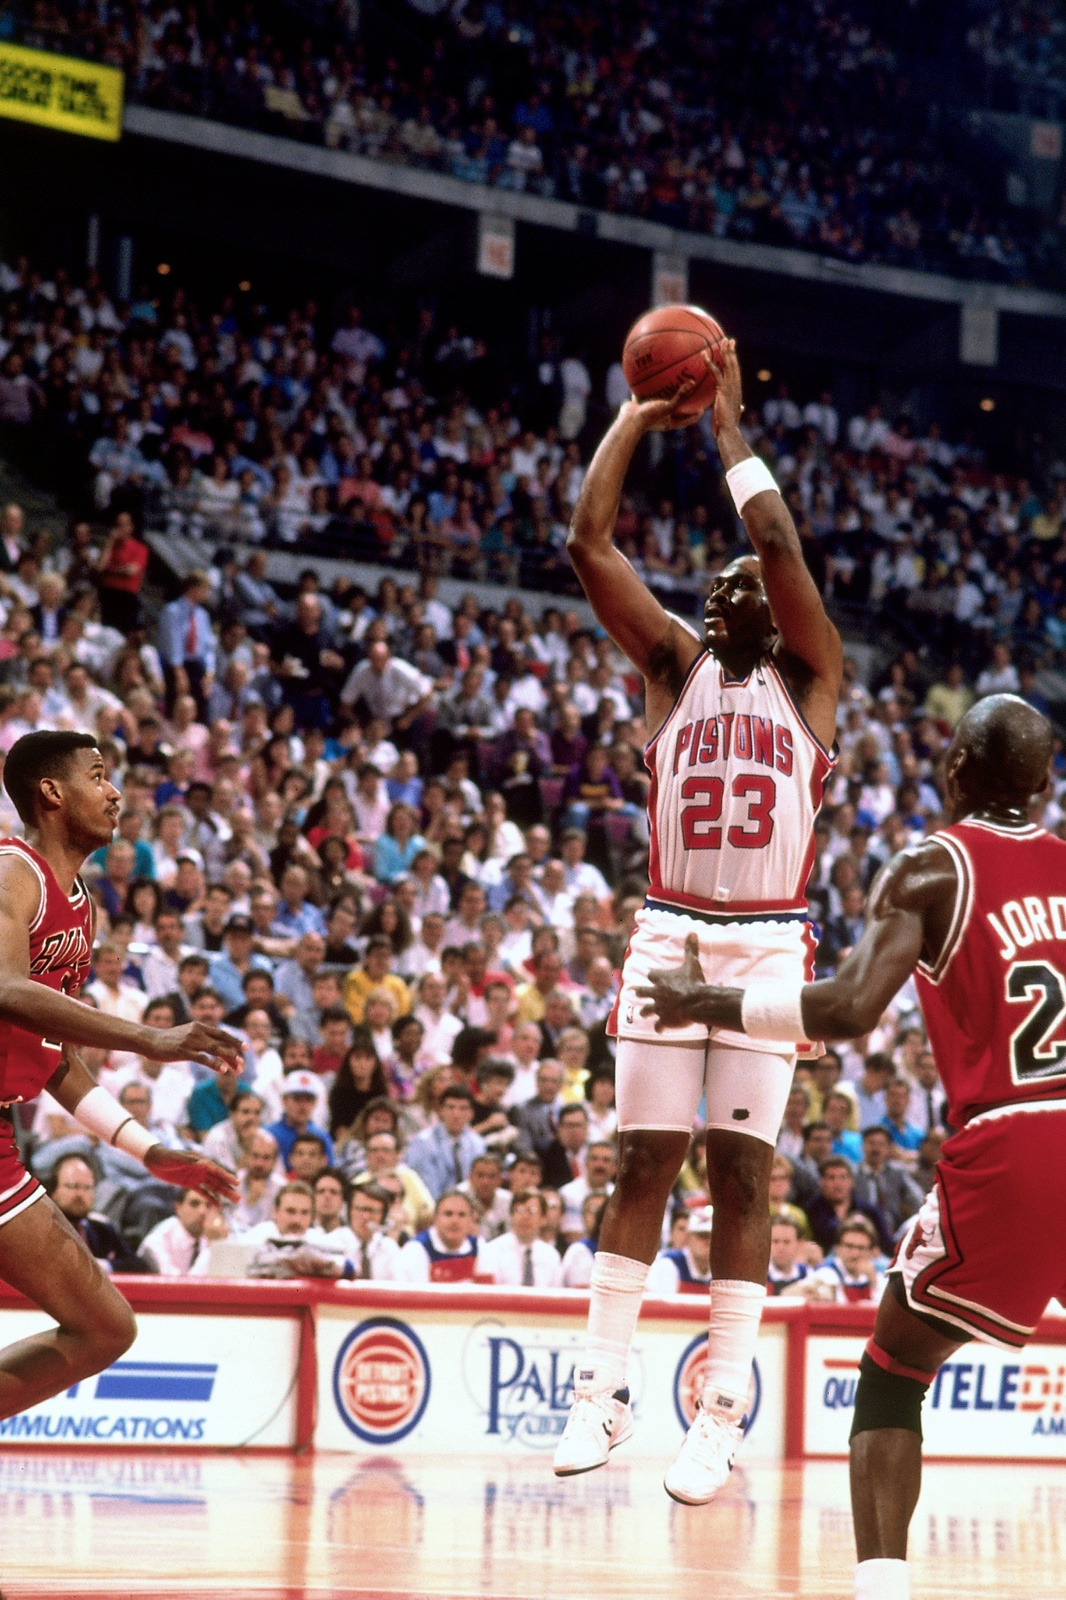 Mark Aguirre #23 of the Detroit Pistons shoots a jump shot over Scottie Pippen #33 of the Chicago Bulls during a 1989 playoff game played at the Palace of Auburn Hills in Auburn Hills, Michigan.